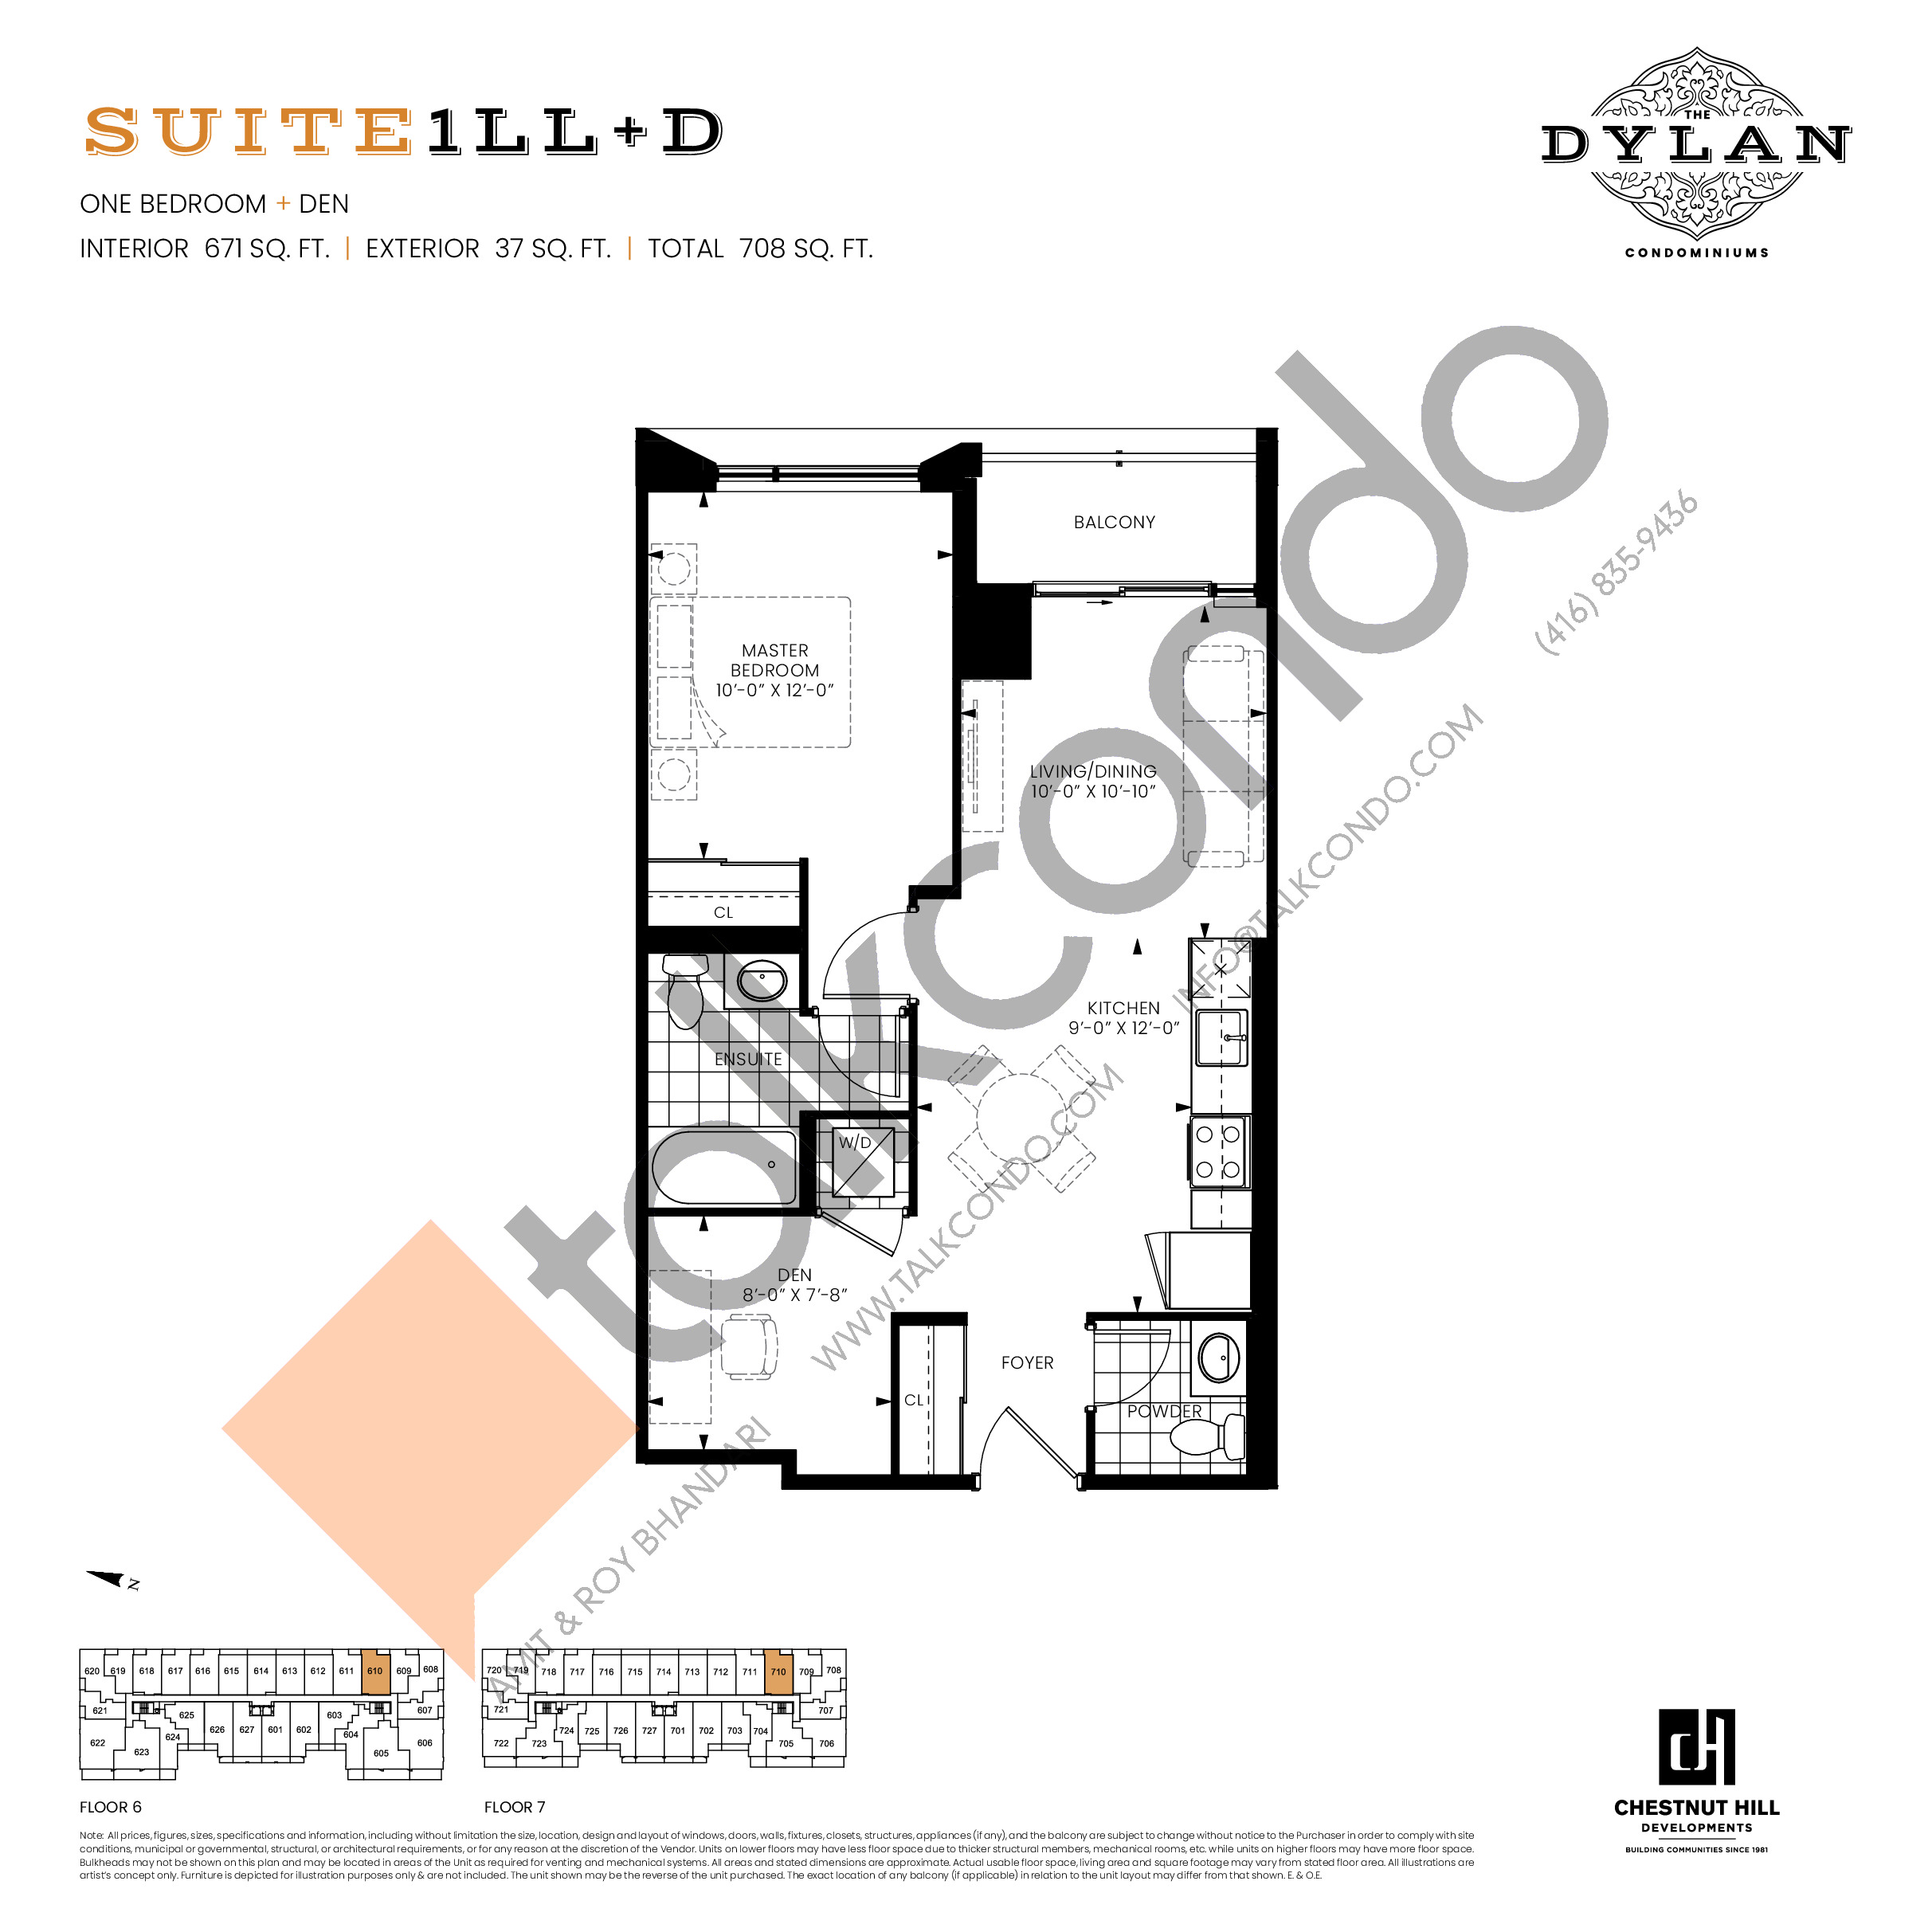 Suite 1LL+D Floor Plan at The Dylan Condos - 671 sq.ft